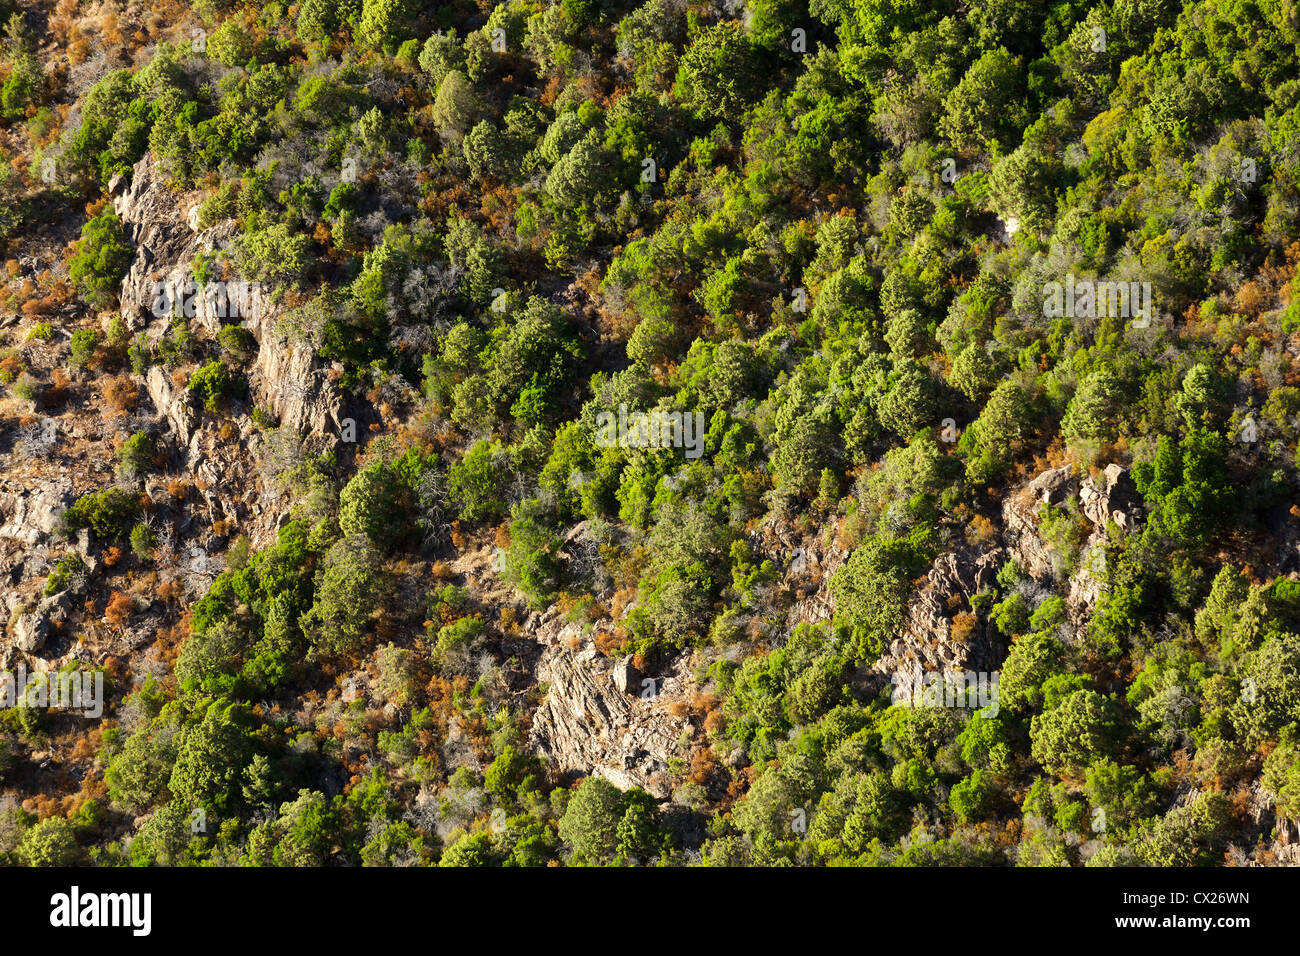 aerial view of pine tree forest in Corsica island, France - Stock Image